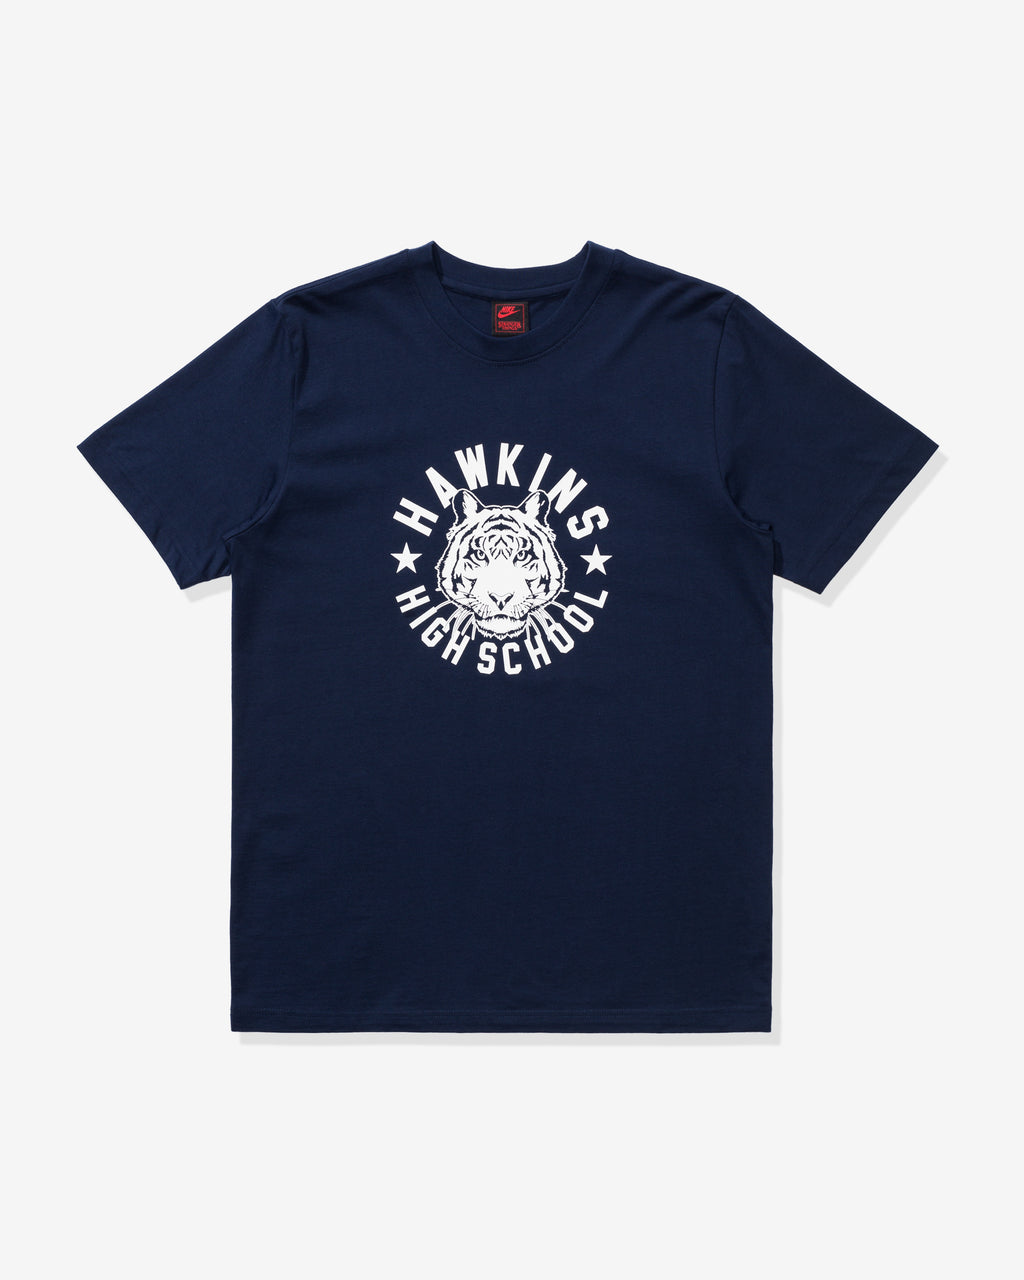 NIKE X STRANGER THINGS TEE - COLLEGENAVY/SAIL